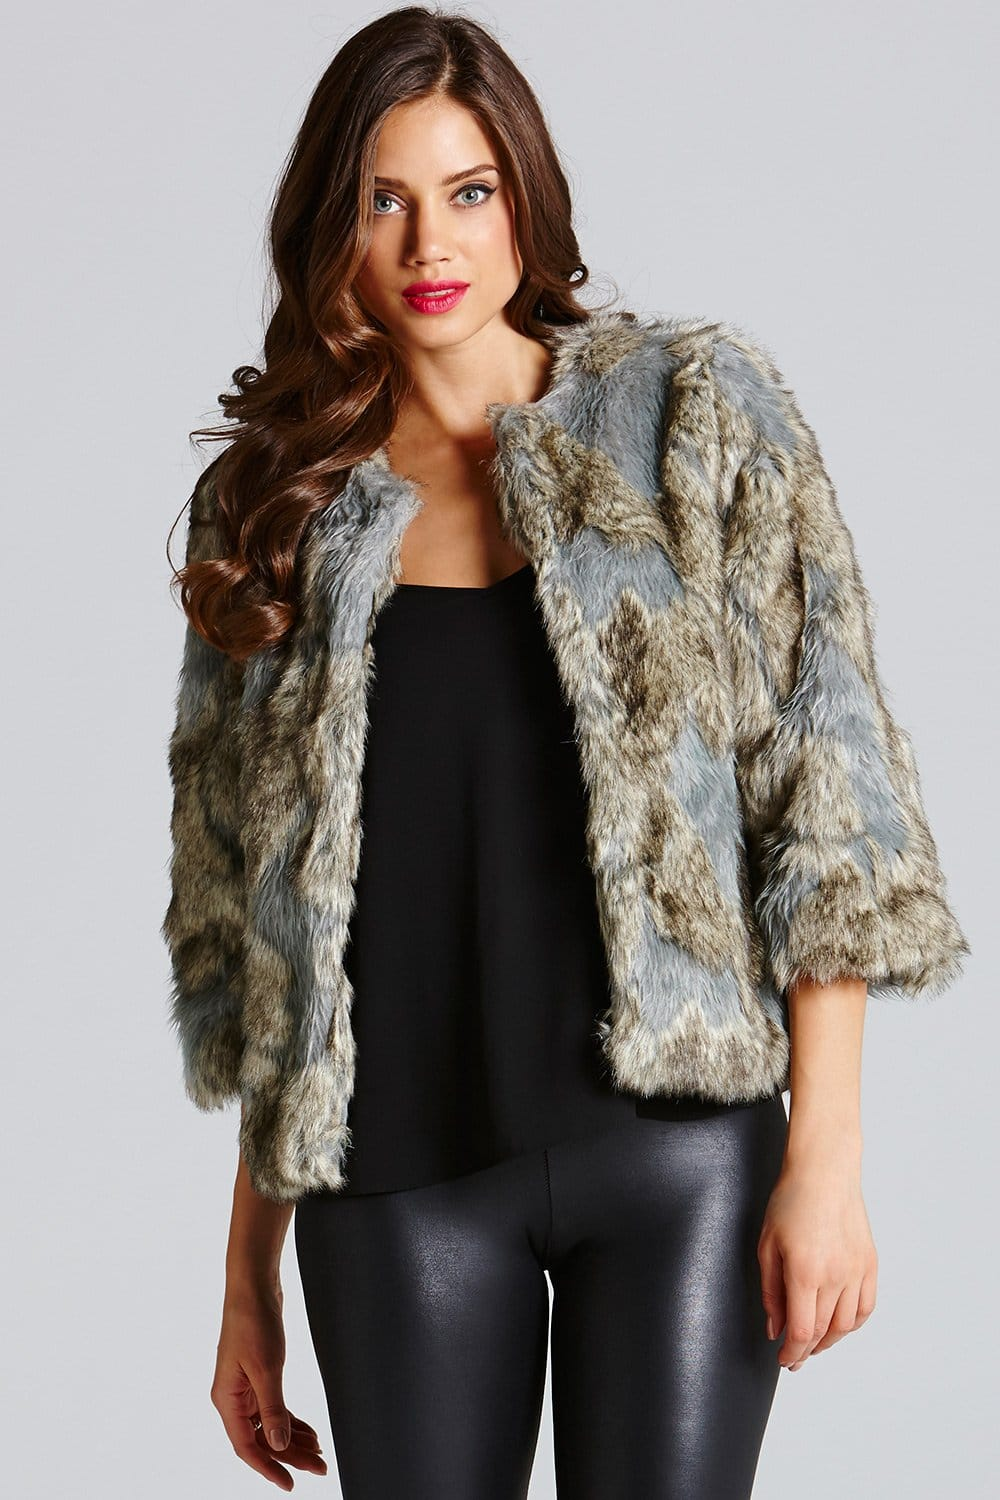 Layer up ladies! From denim jackets to vests and blazers, stylish outerwear from Charlotte Russe has got you covered, no matter what the forecast says.